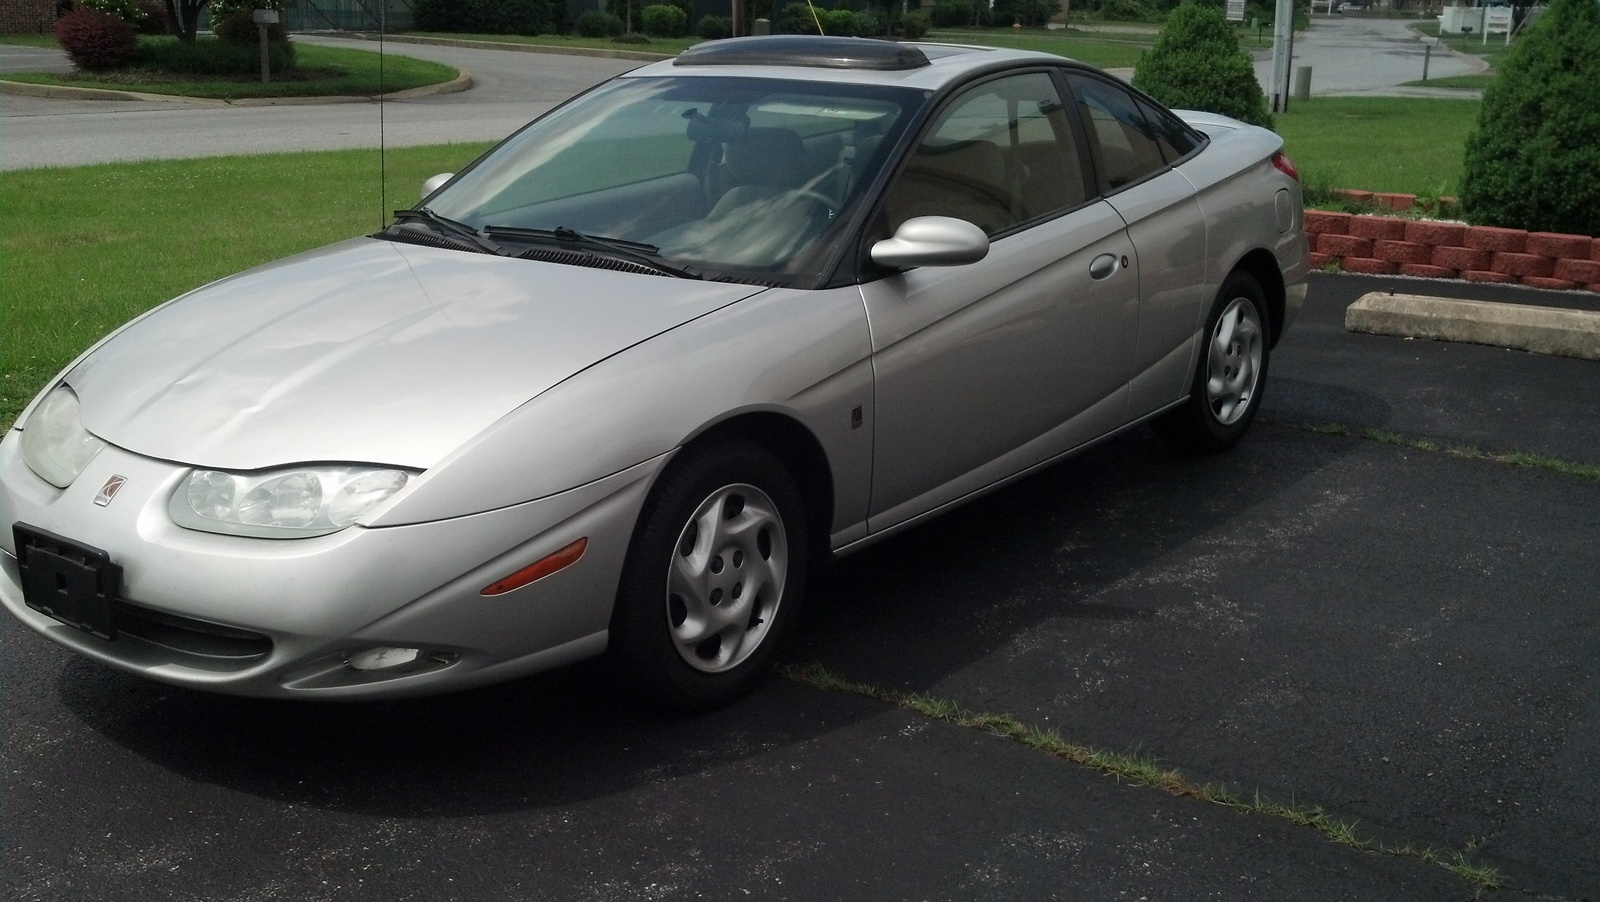 service manual free download of a 2002 saturn s series. Black Bedroom Furniture Sets. Home Design Ideas